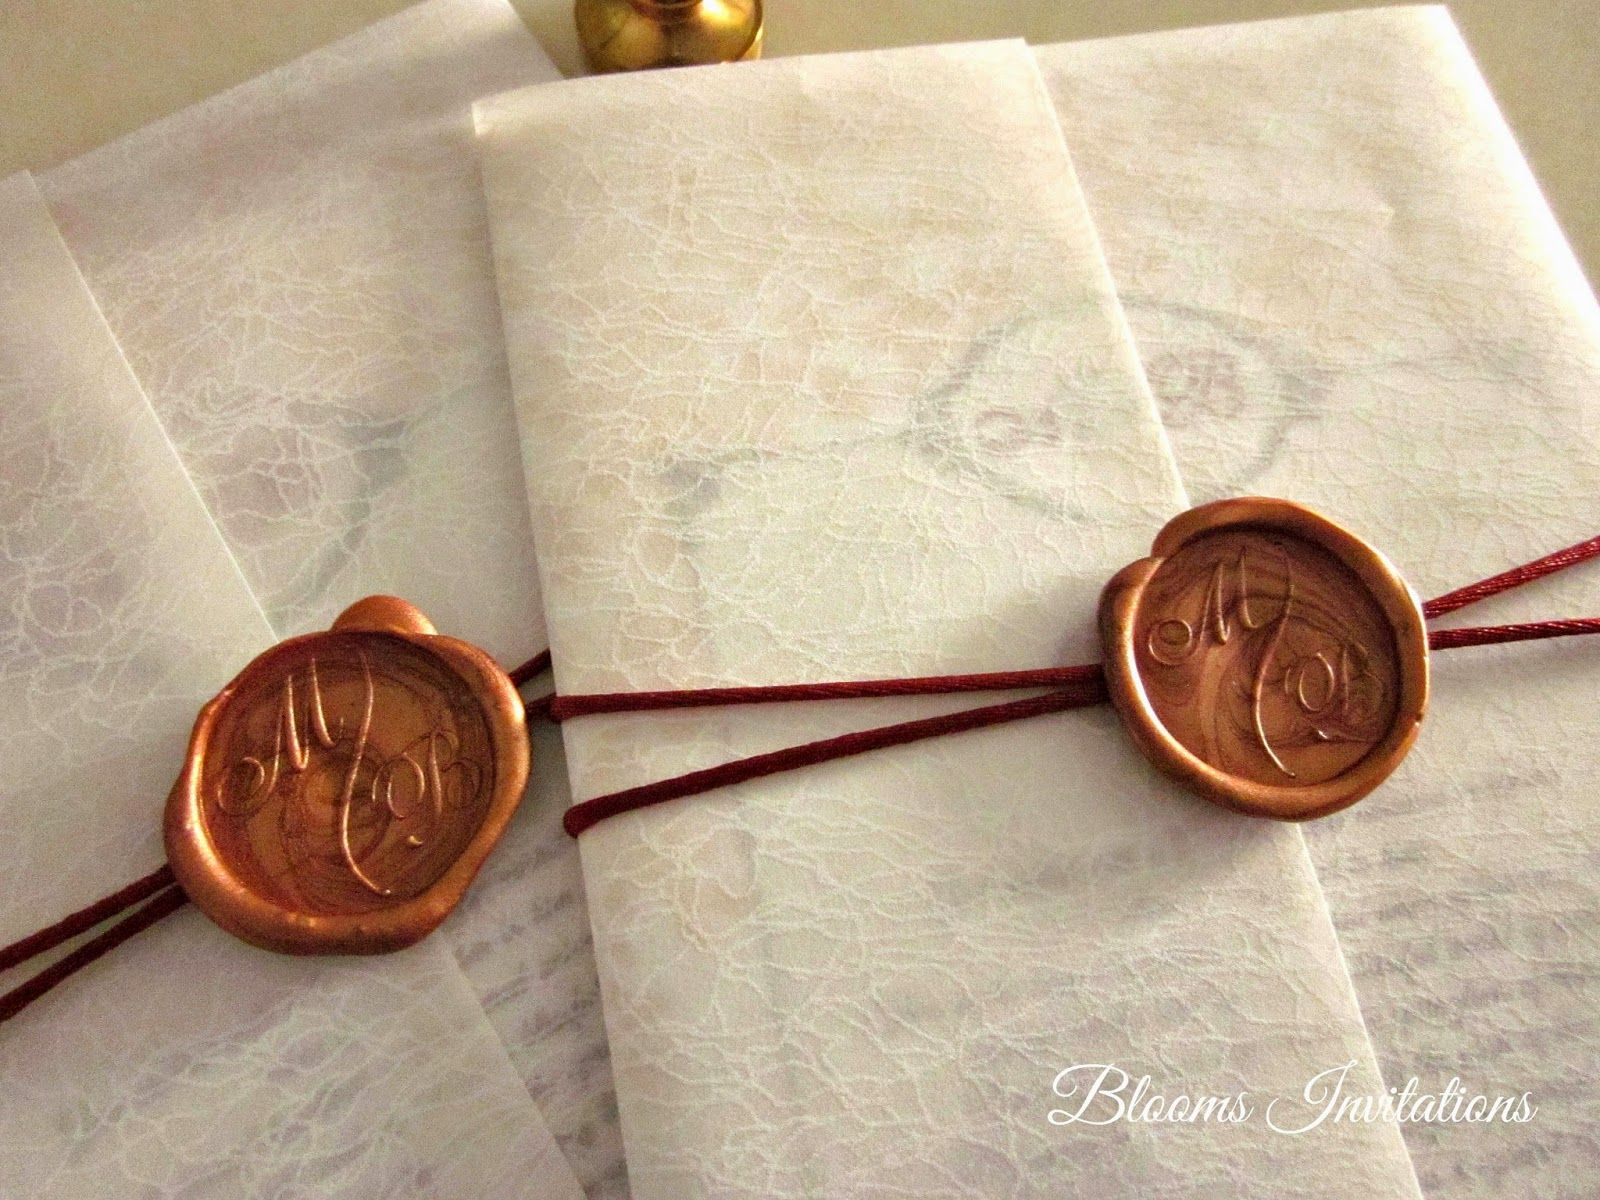 Wax Seal Wedding Invitation Can Get Them At Art Friends The Curve For RM40